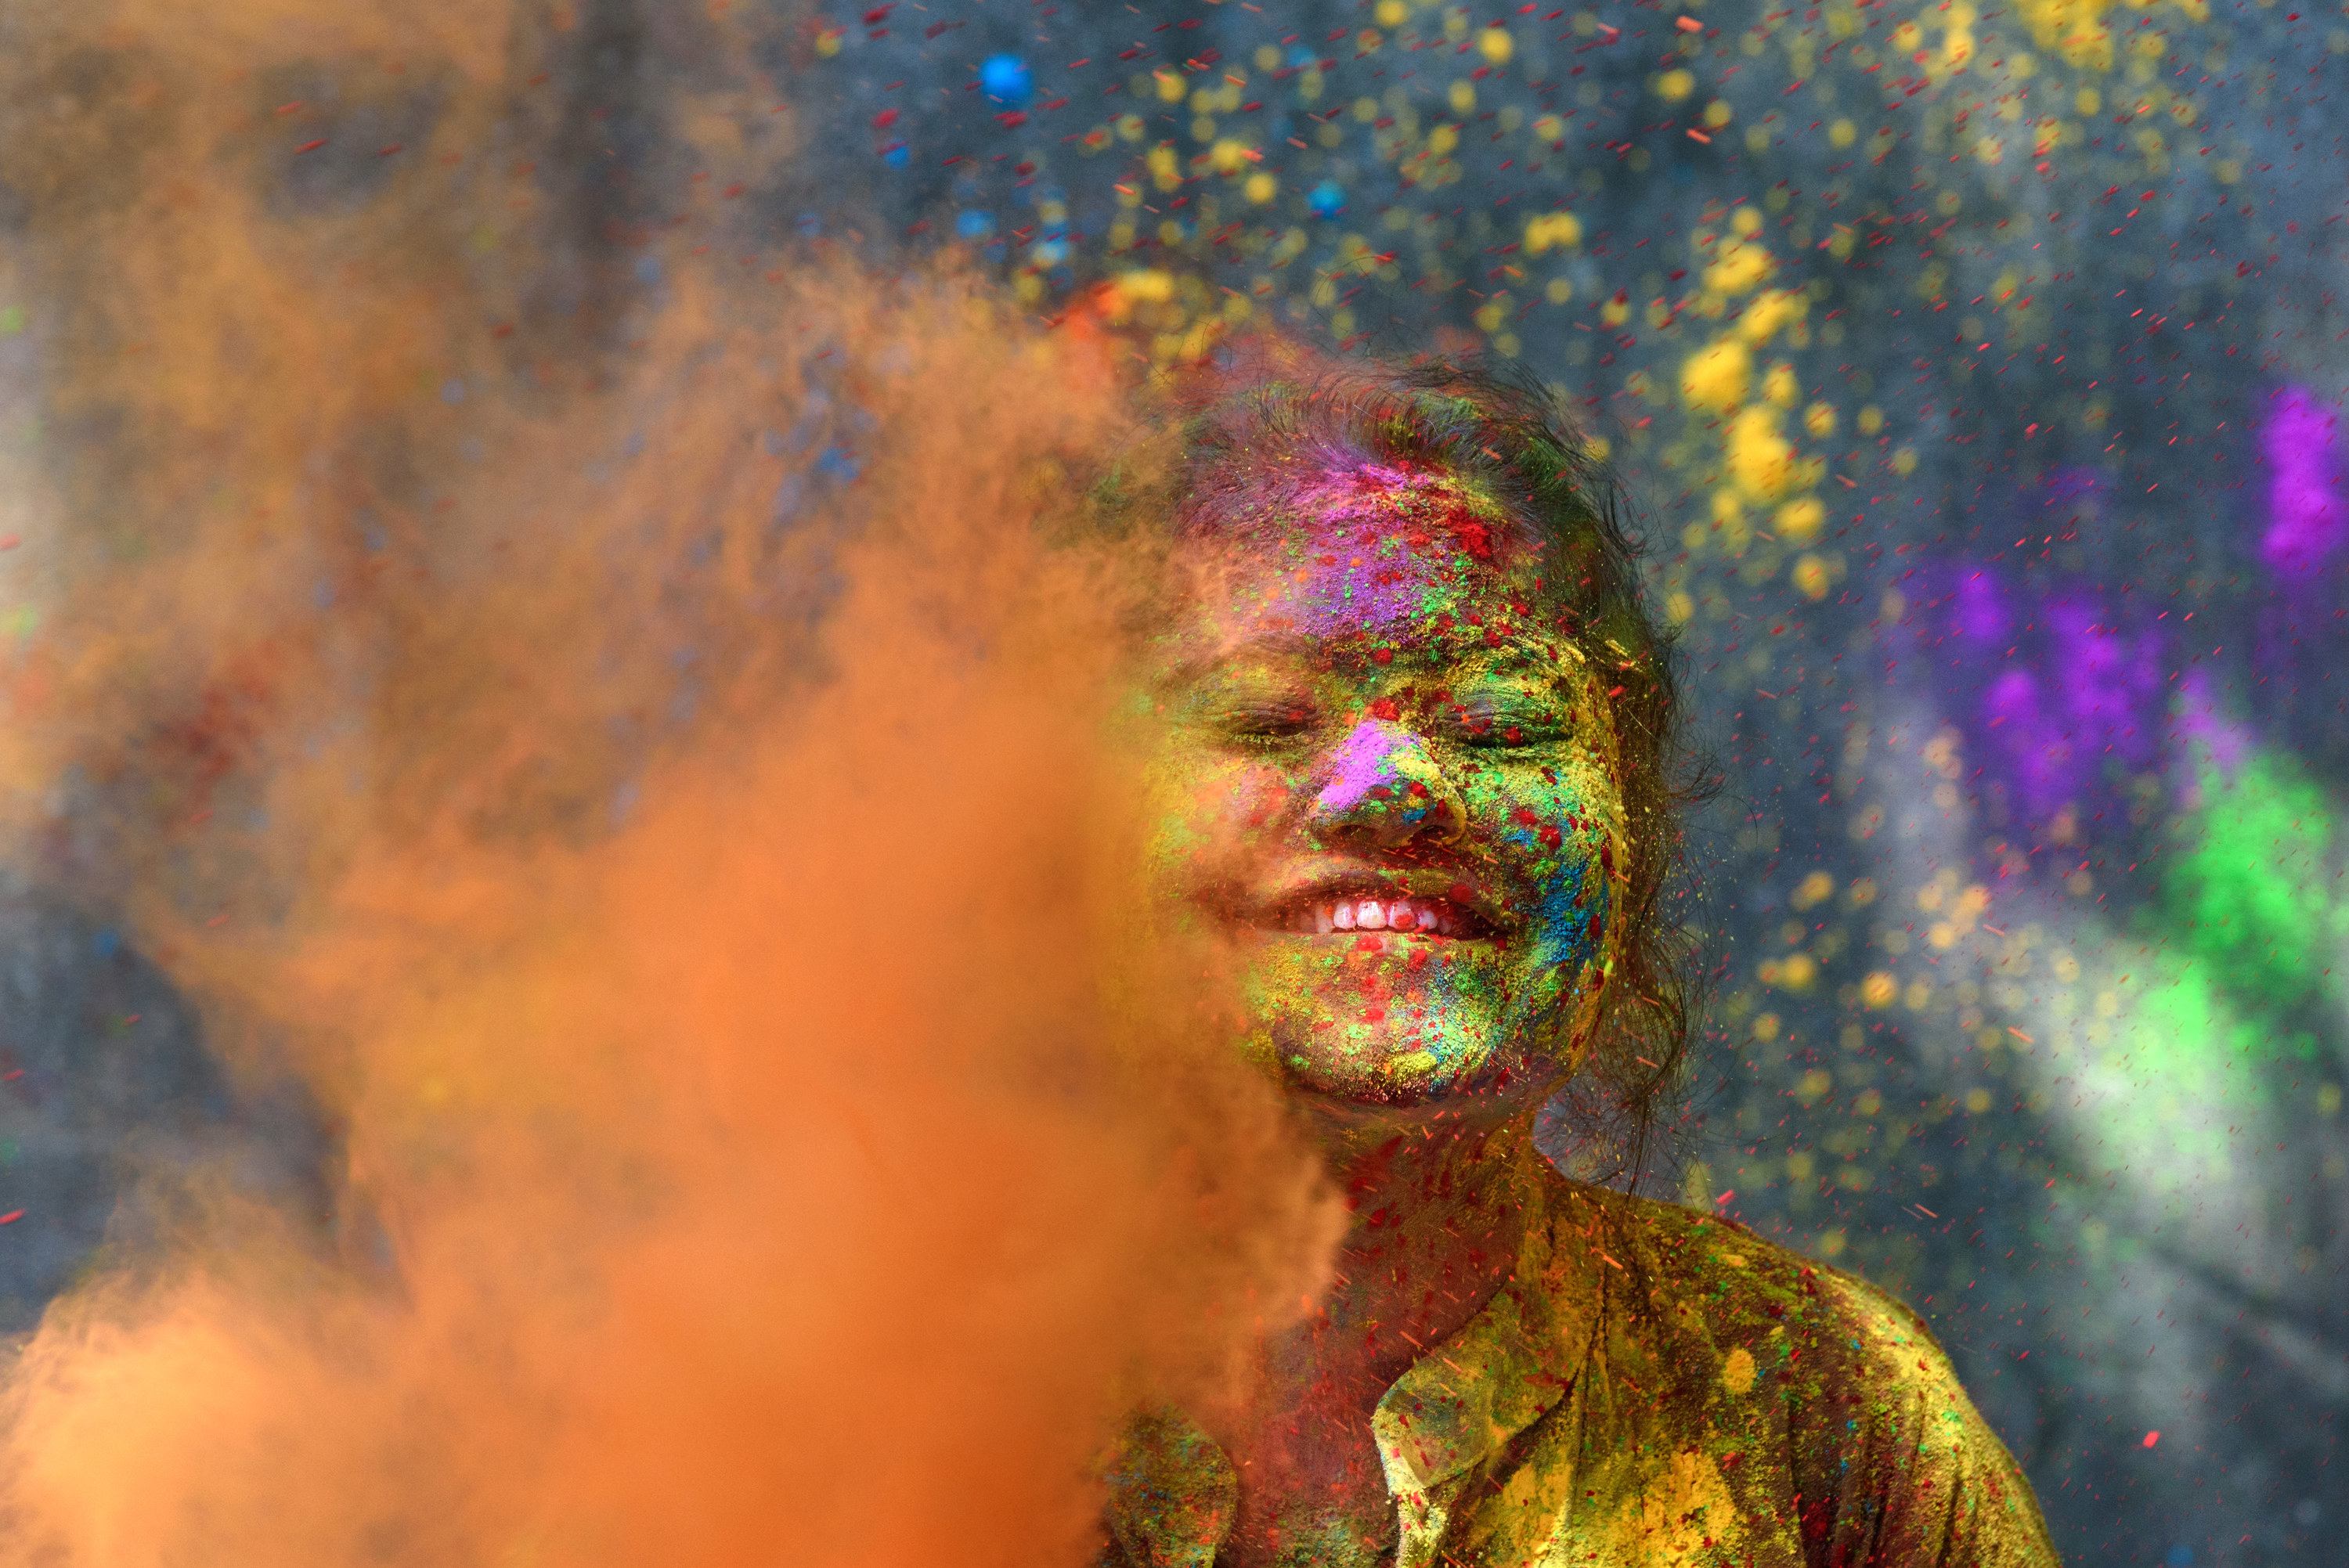 A woman smiling and covered in colors with more being thrown around her on Holi